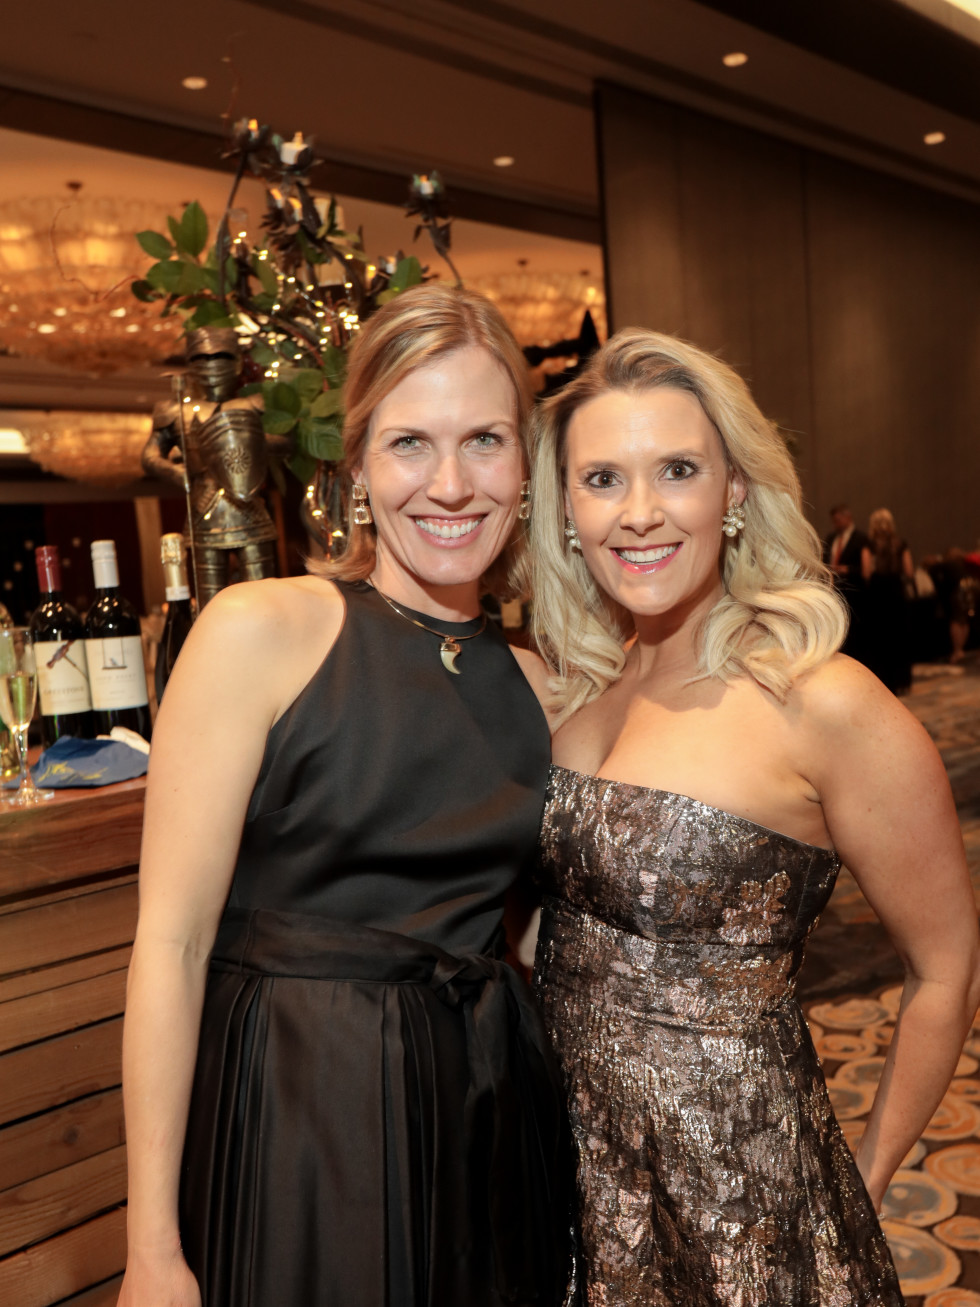 West U Park Lover's Ball 2020 Nancy Kate Prescott and Peyton Popp